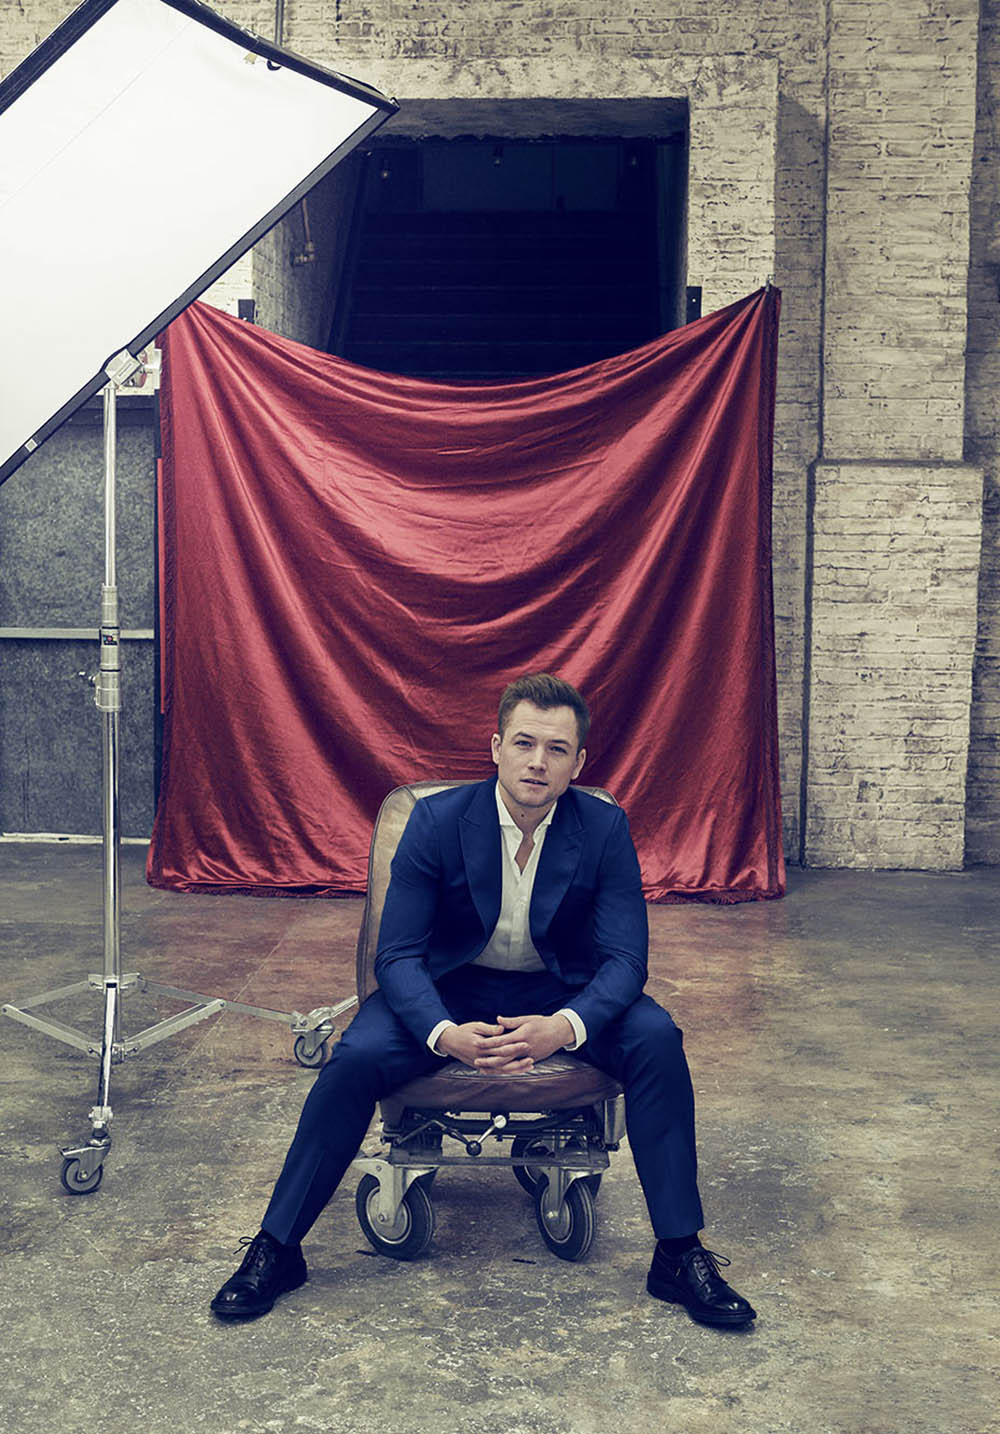 Taron Egerton covers The Hollywood Reporter May 8th, 2019 by Ruven Afanador